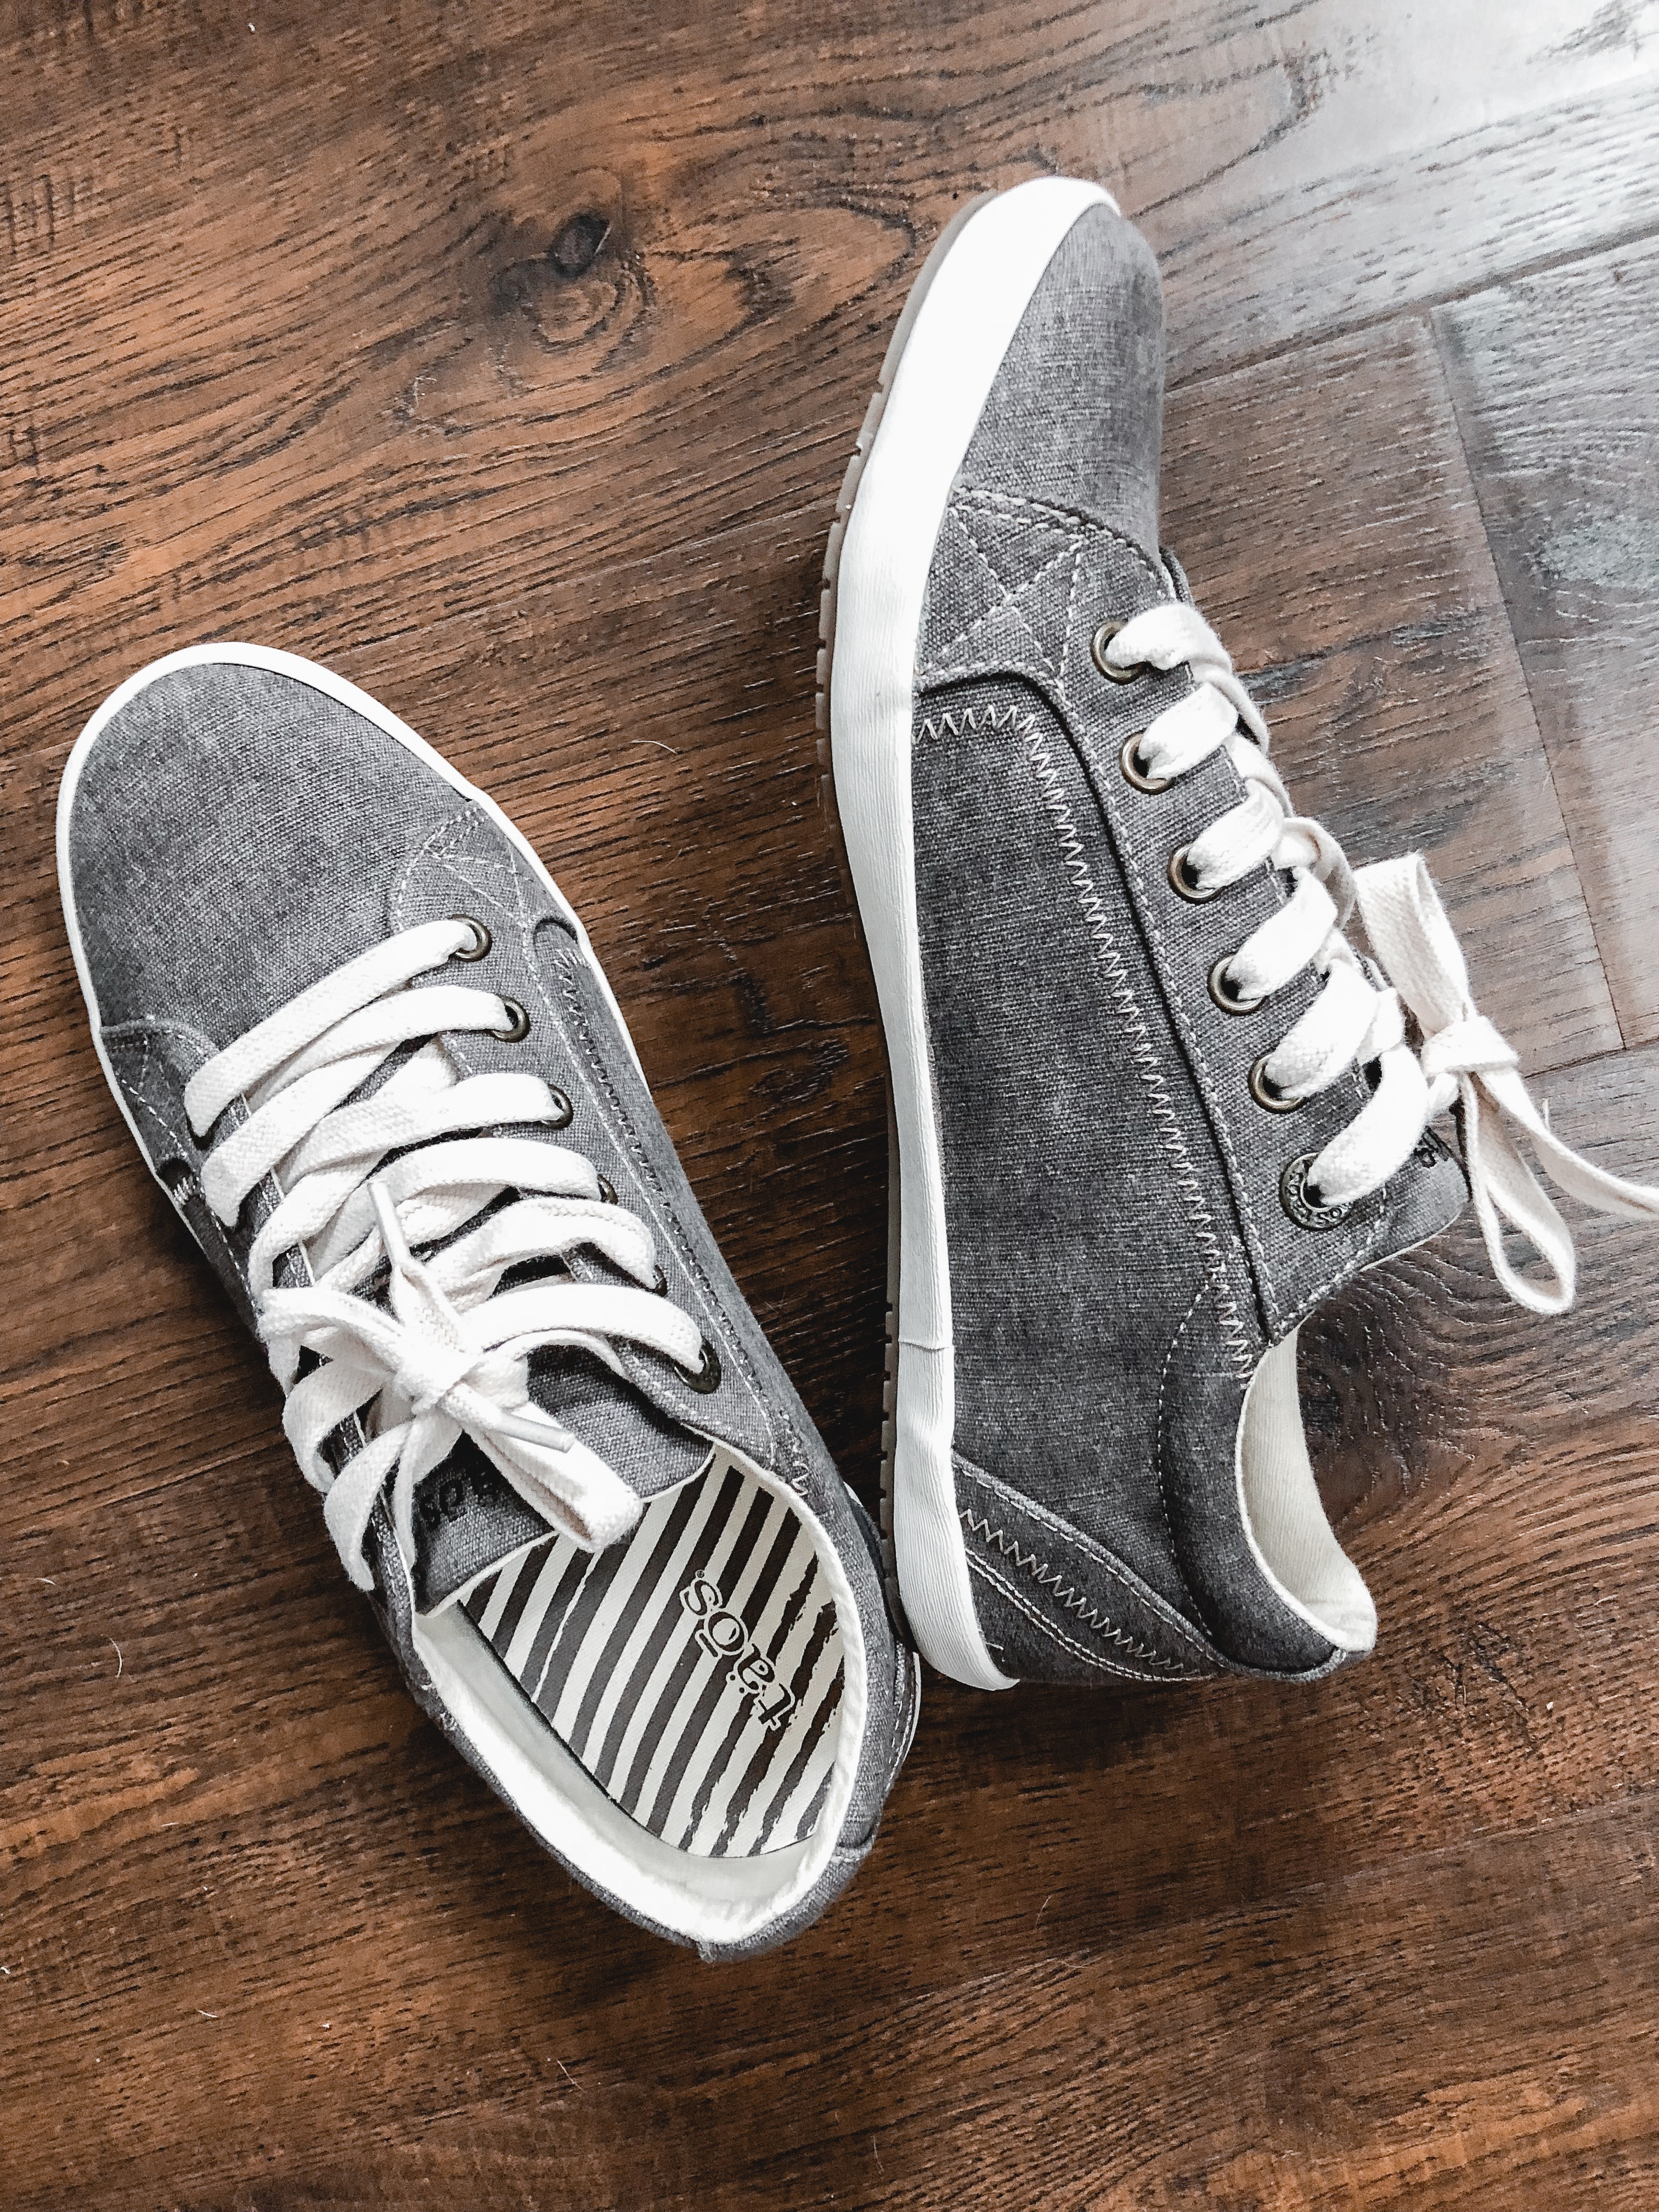 gray sneakers - trunk club review and try-on session | bylaurenm.com